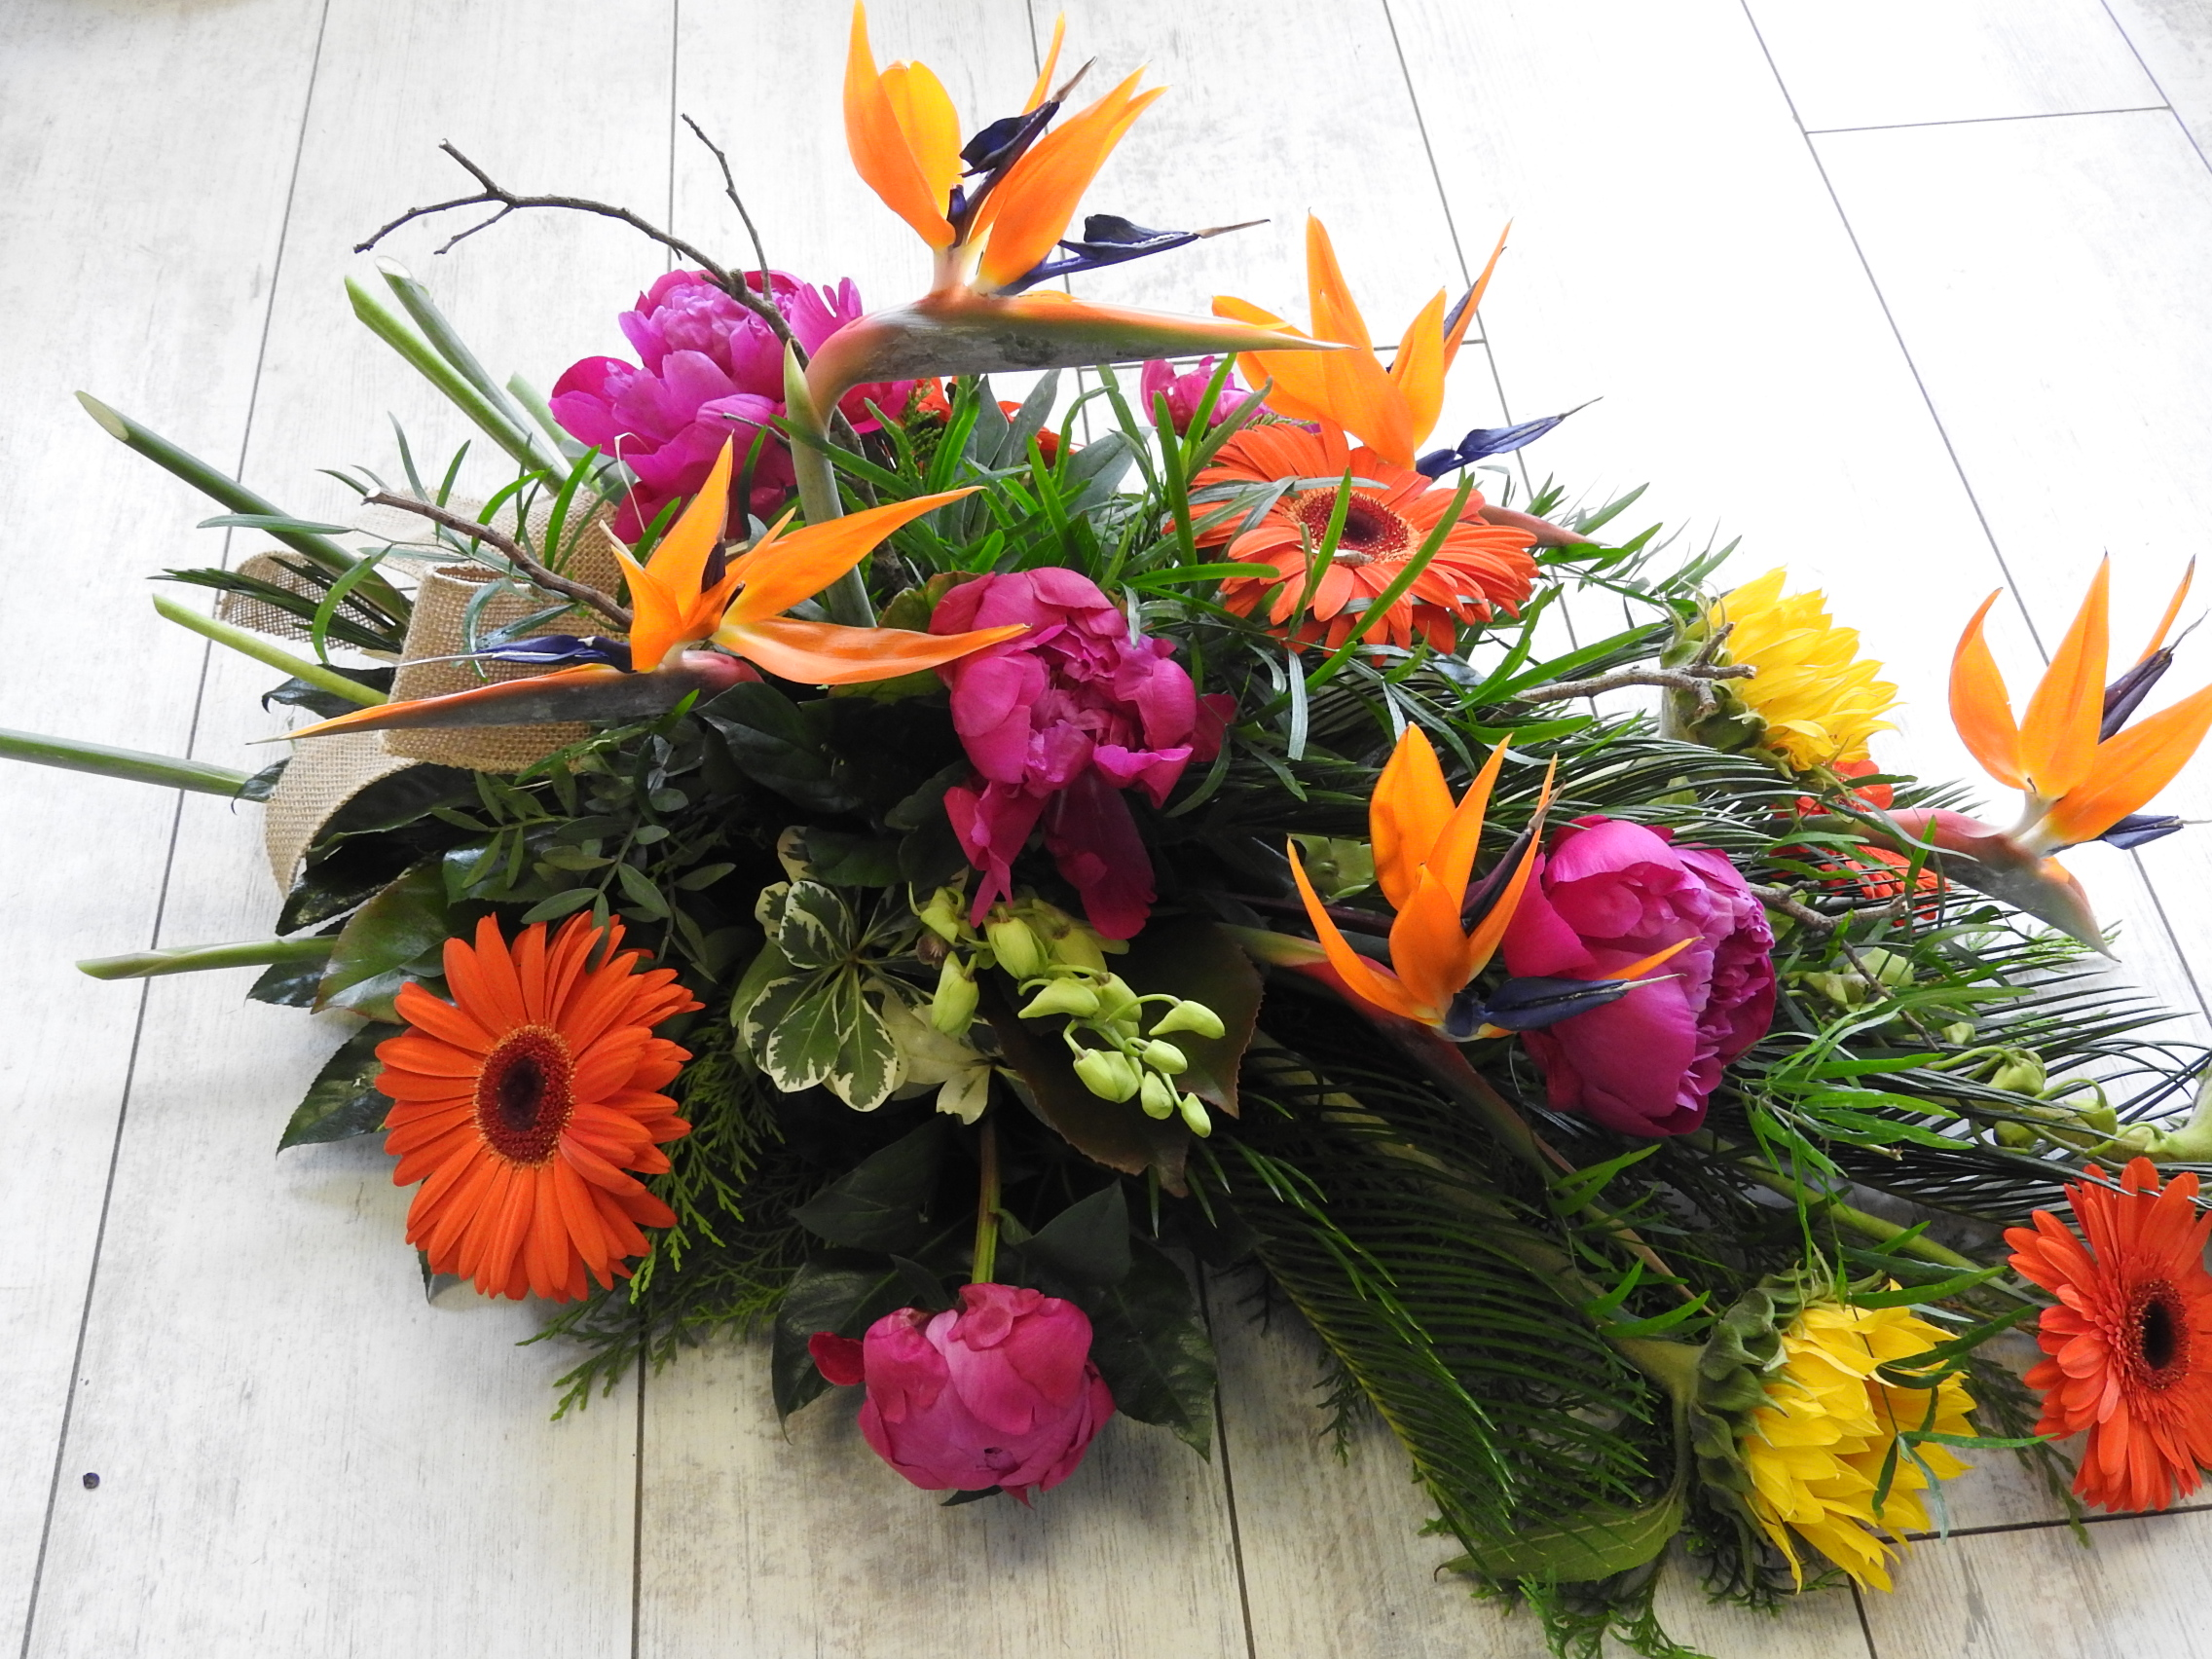 Funeral Flowers Spray Order Online For Flower Delivery